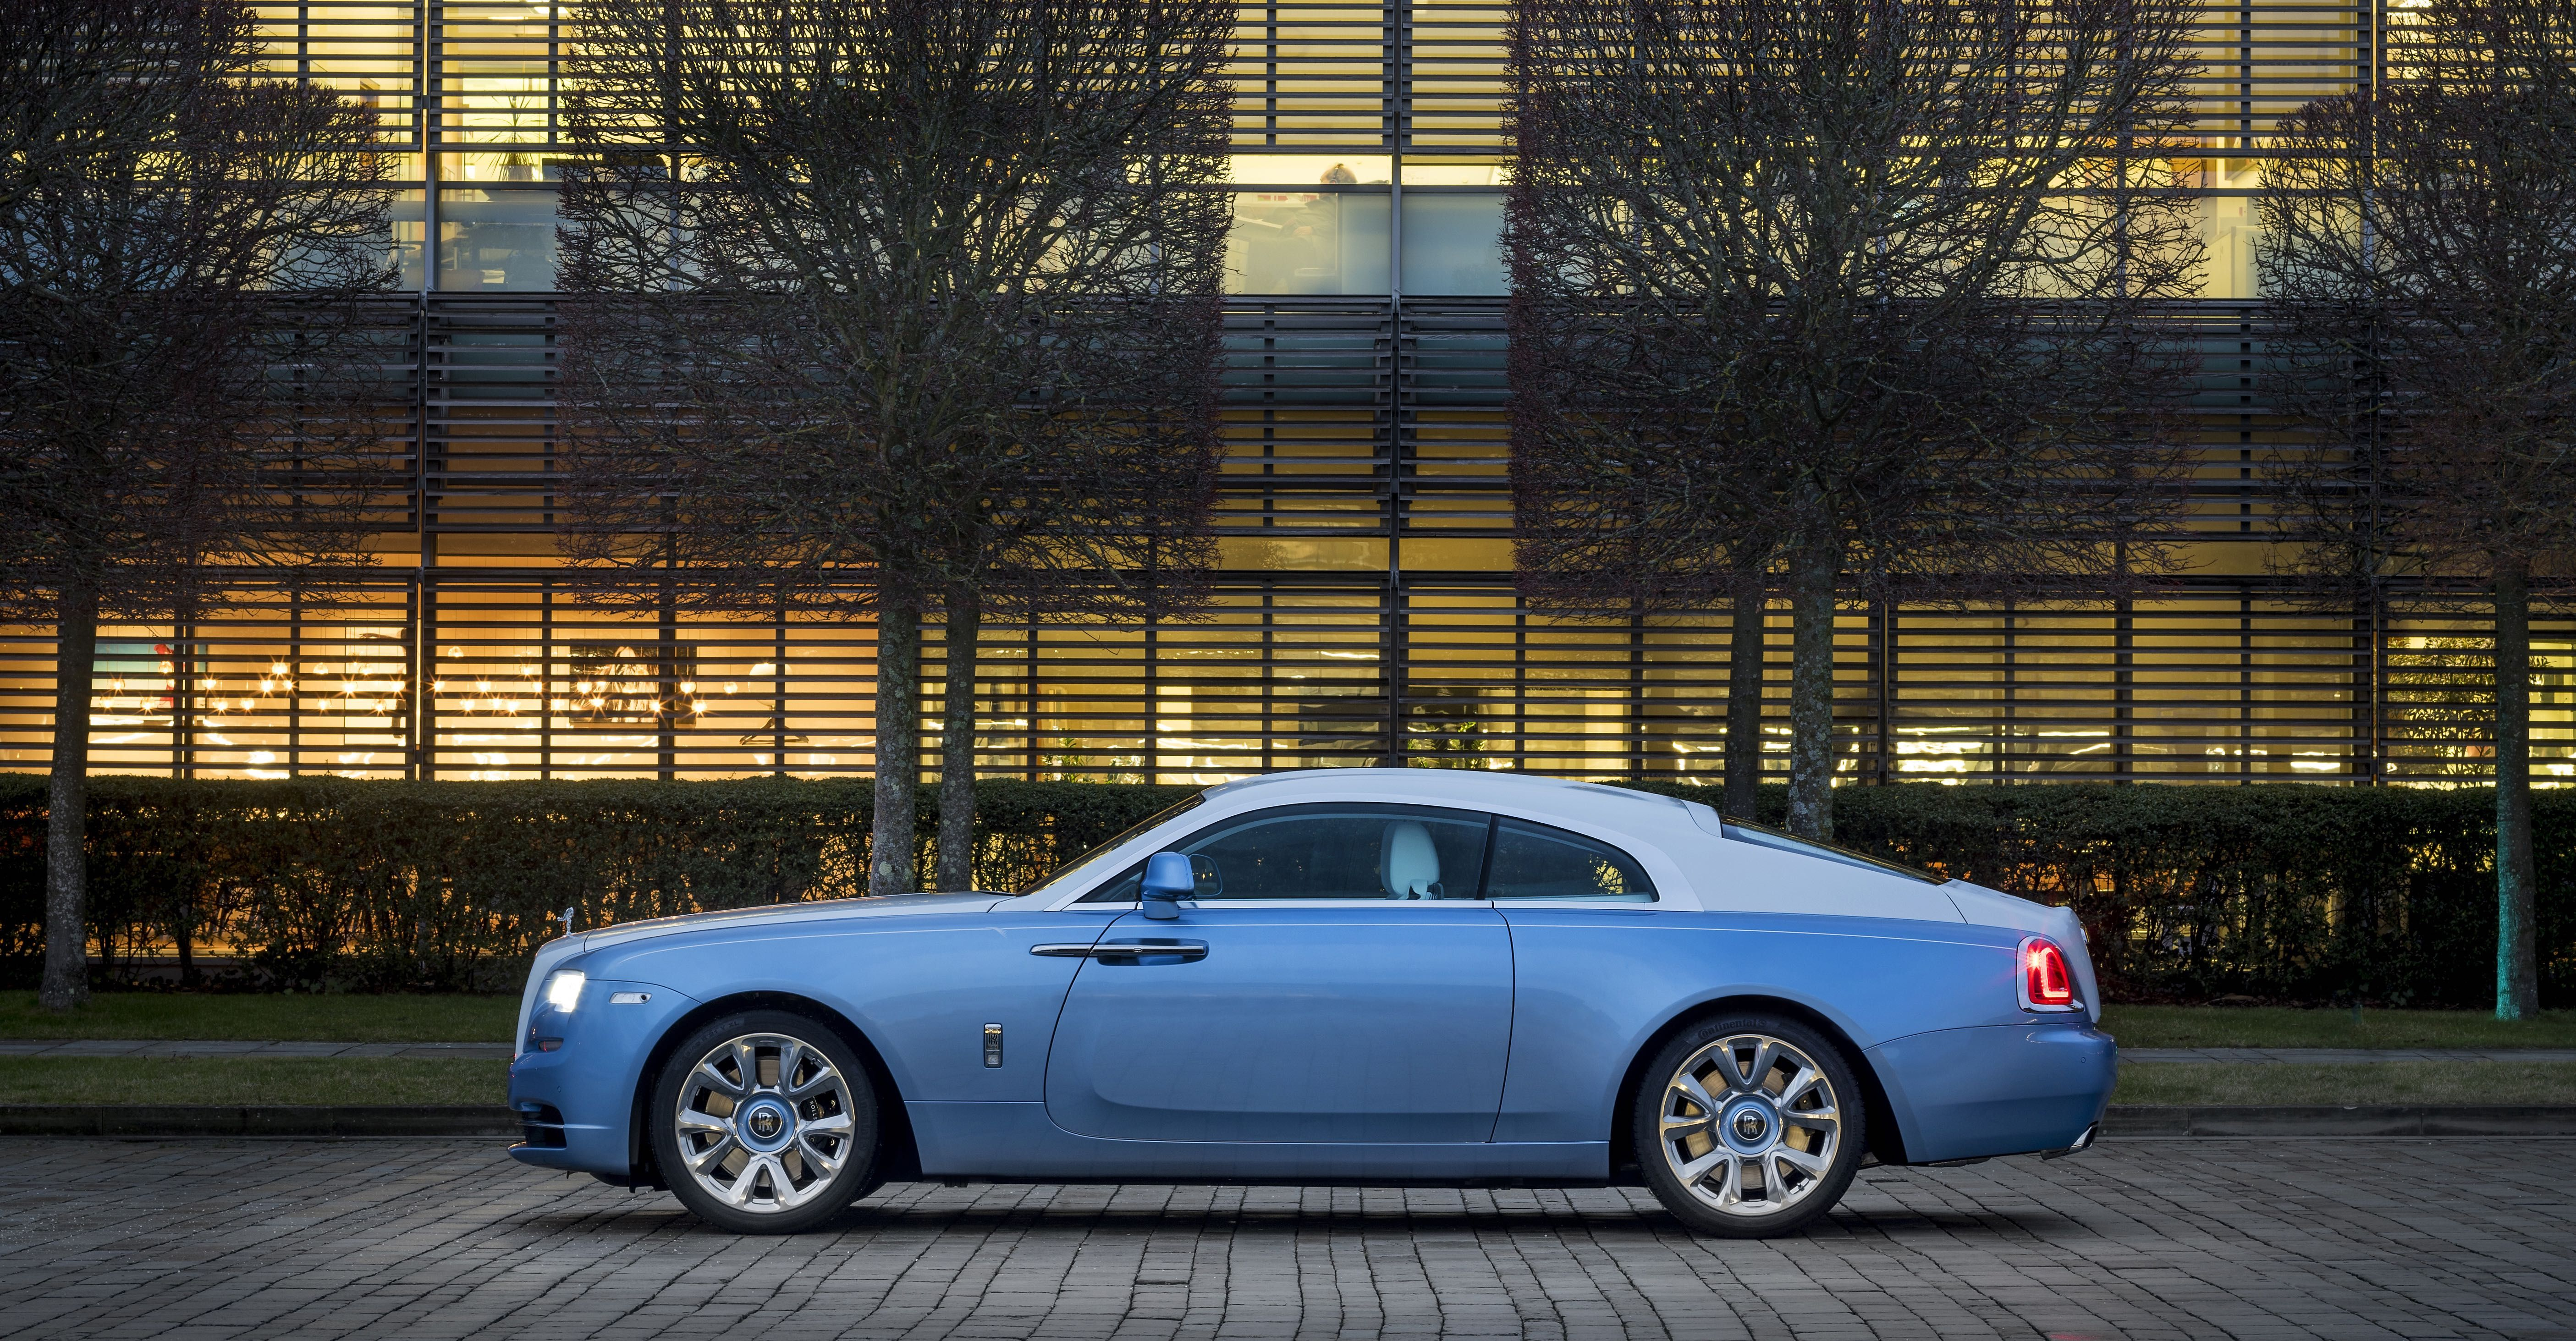 Rolls Royce Falcon Wraith Captivates With Detailed Embroidery